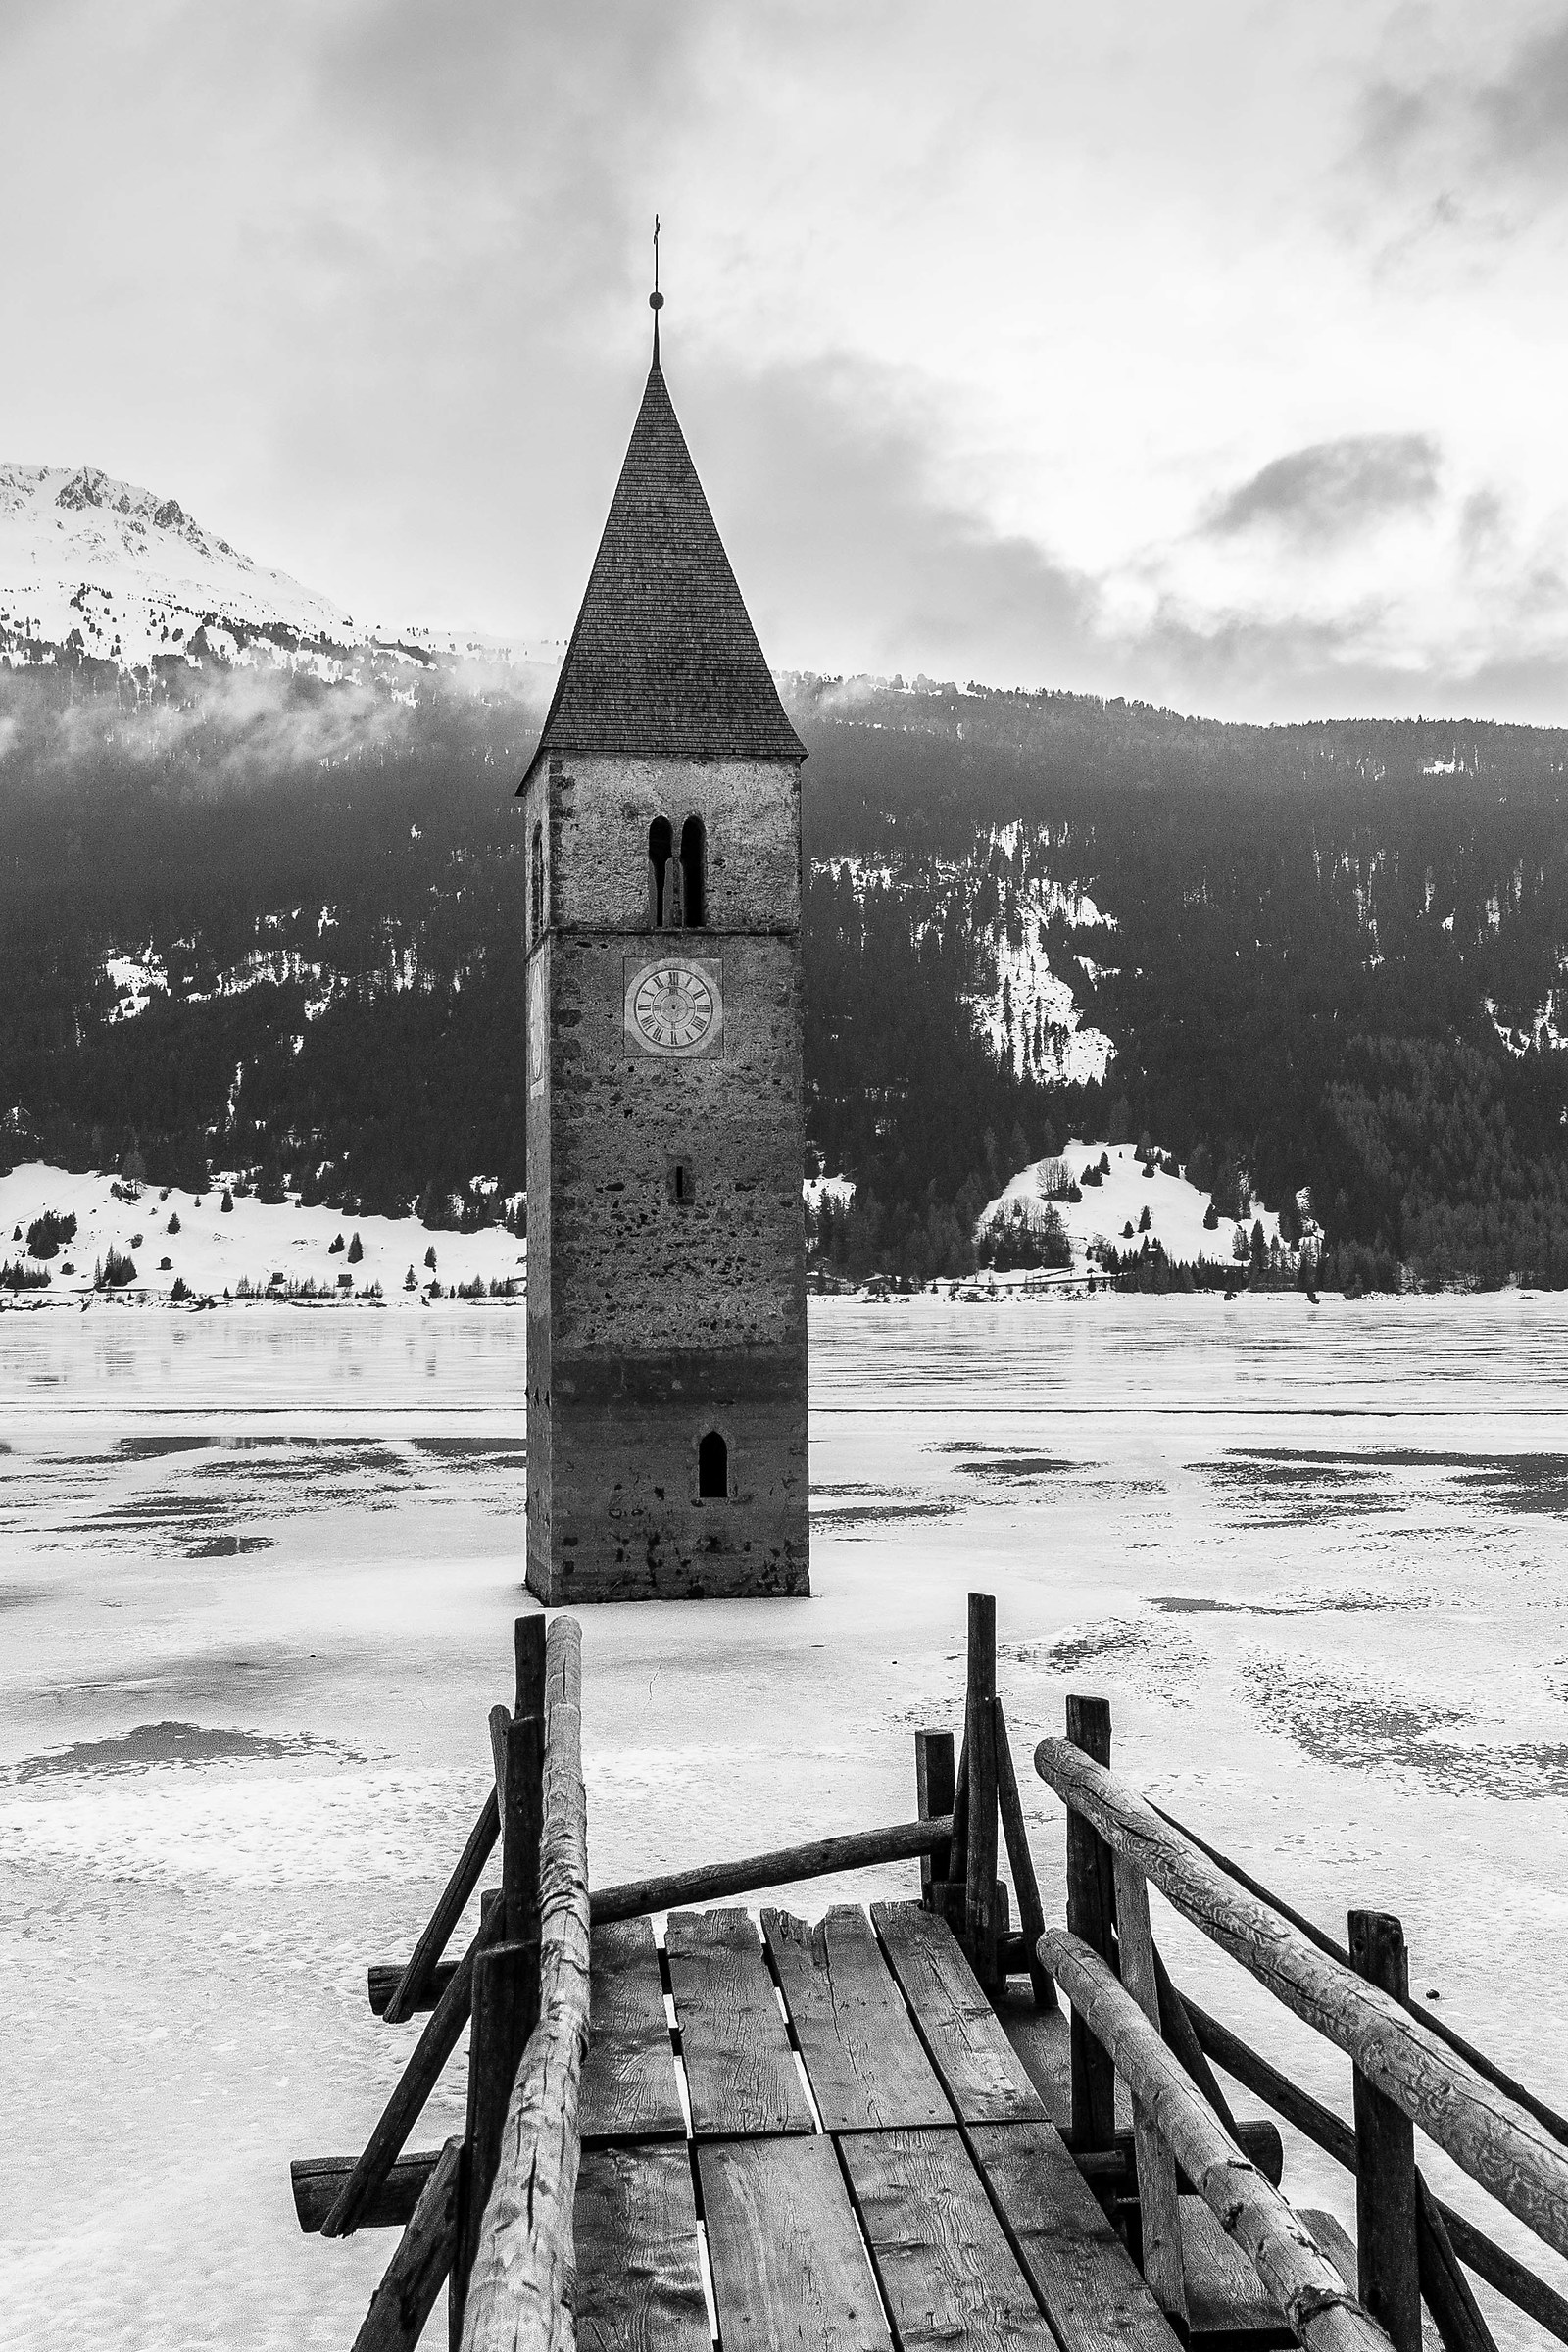 Lake Resia and the submerged city...